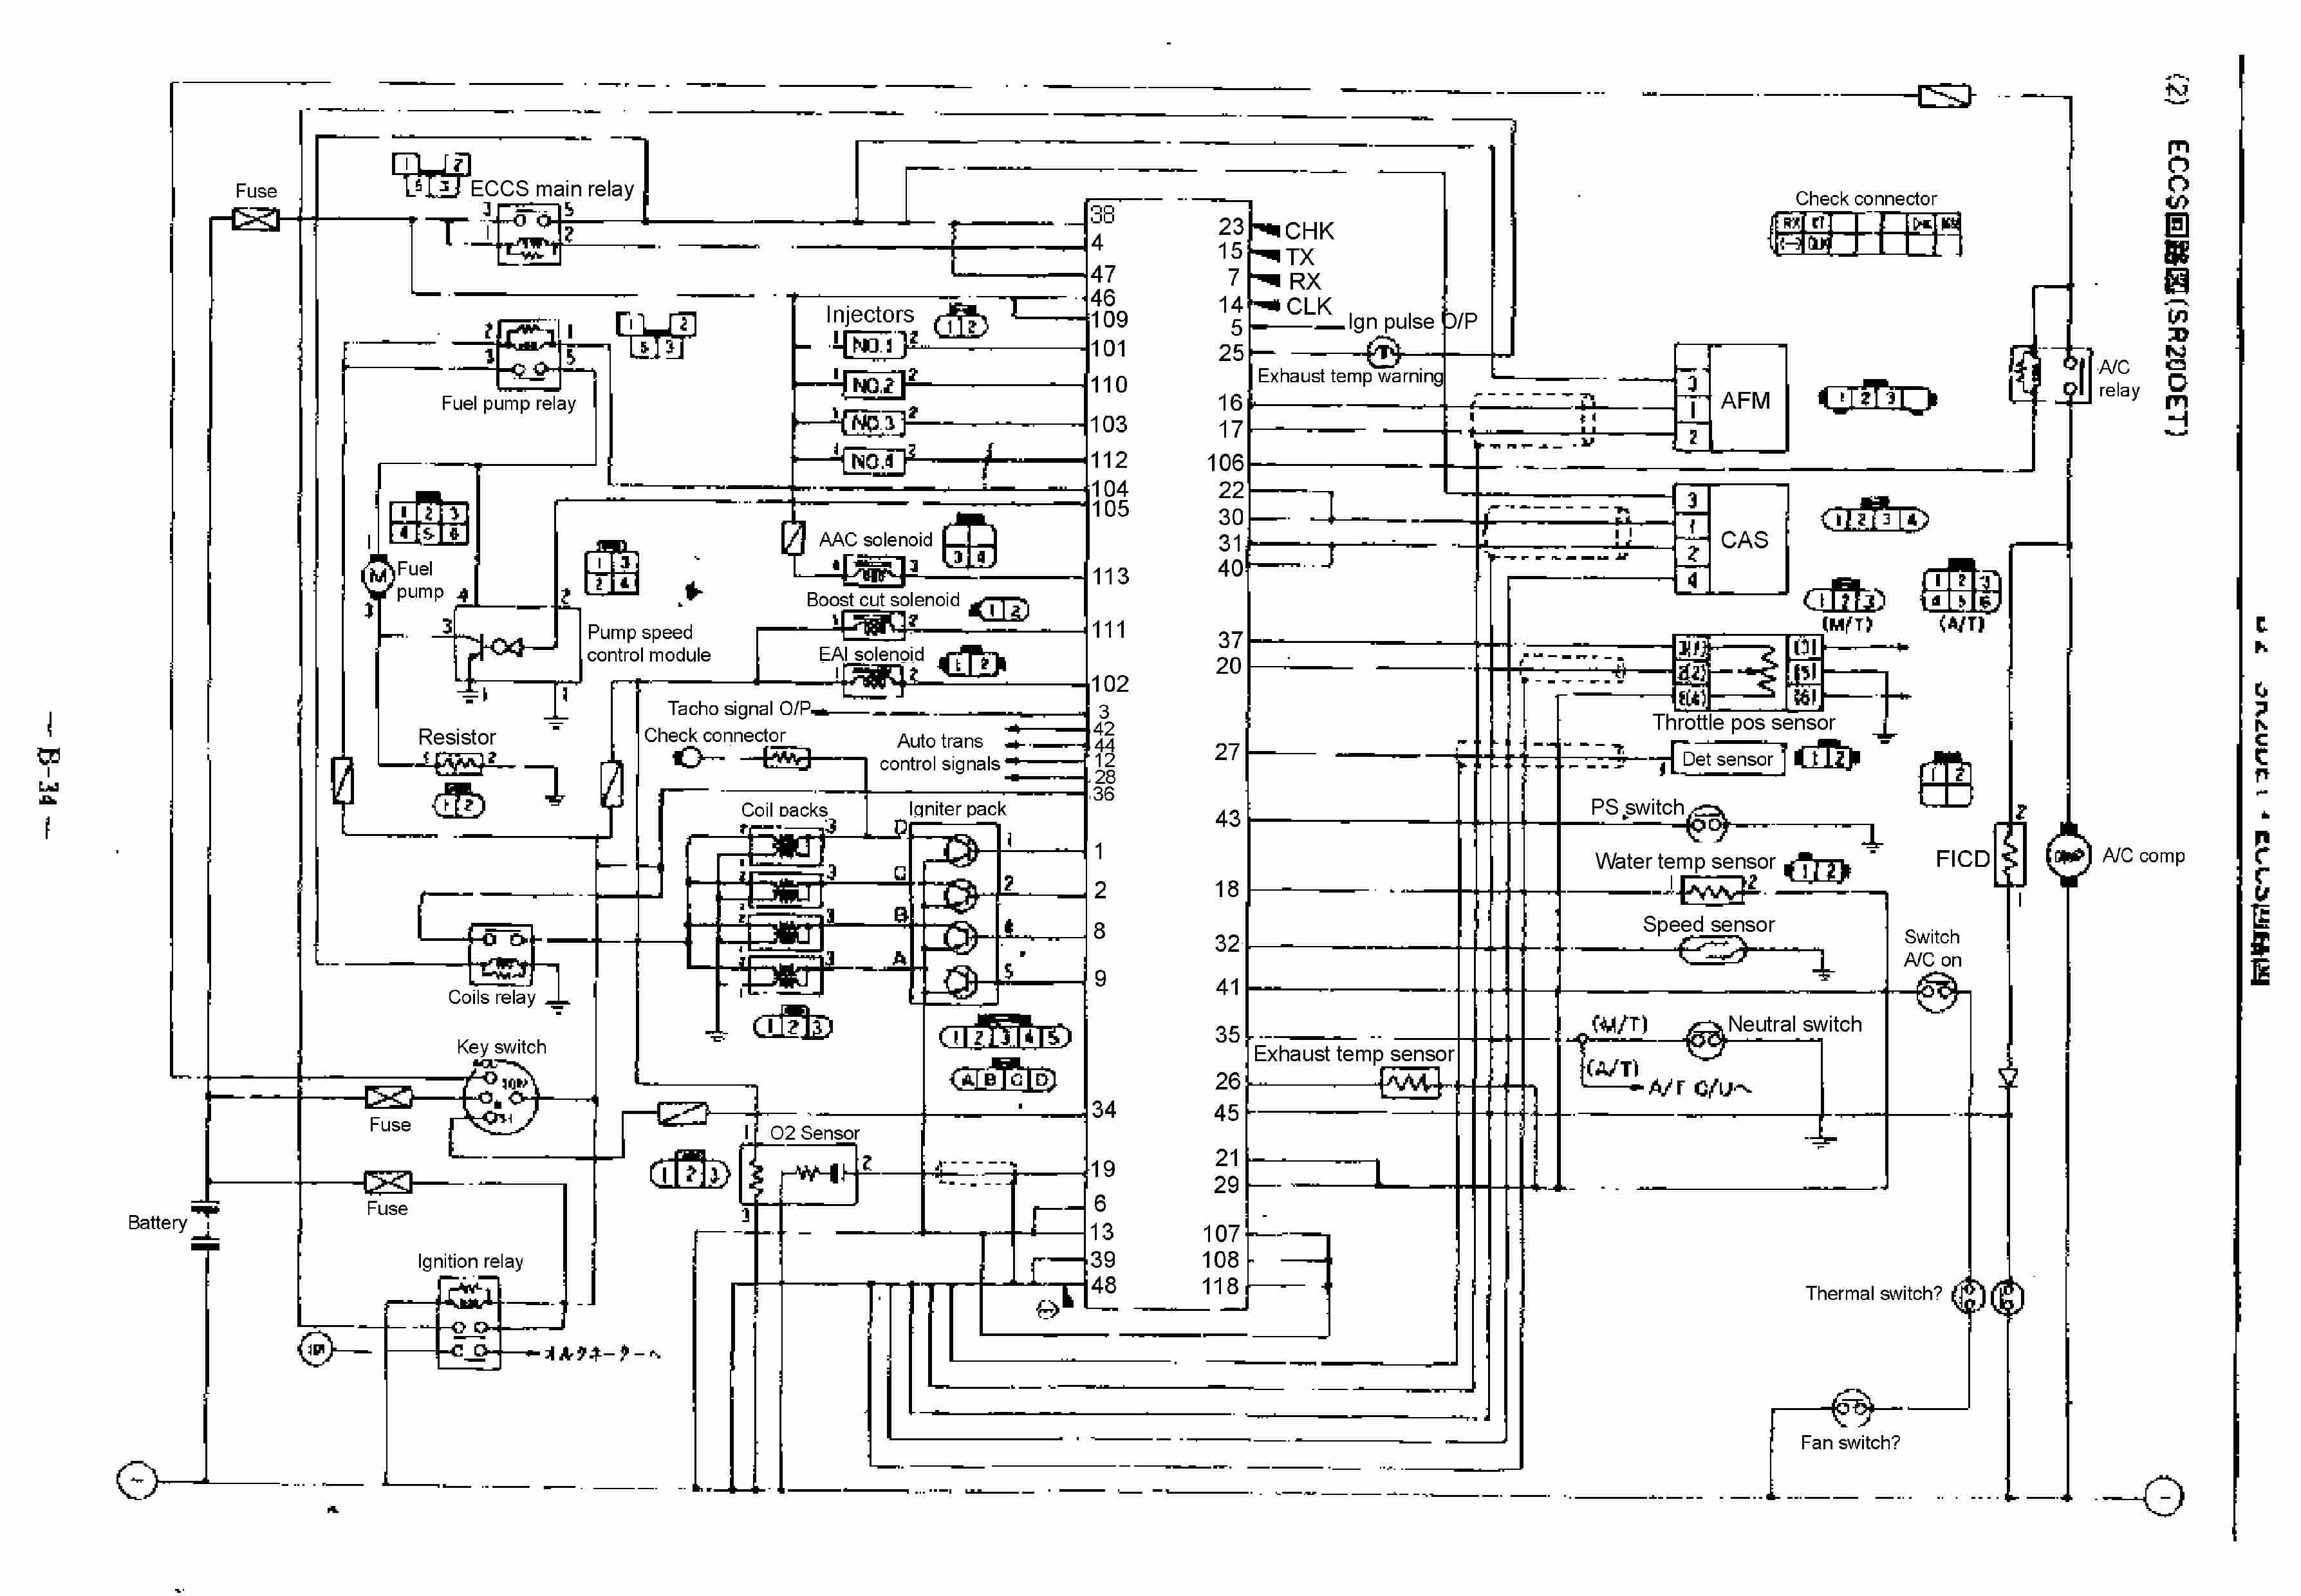 time clock wiring diagram time image wiring diagram time clock wiring diagram wiring diagram and hernes on time clock wiring diagram